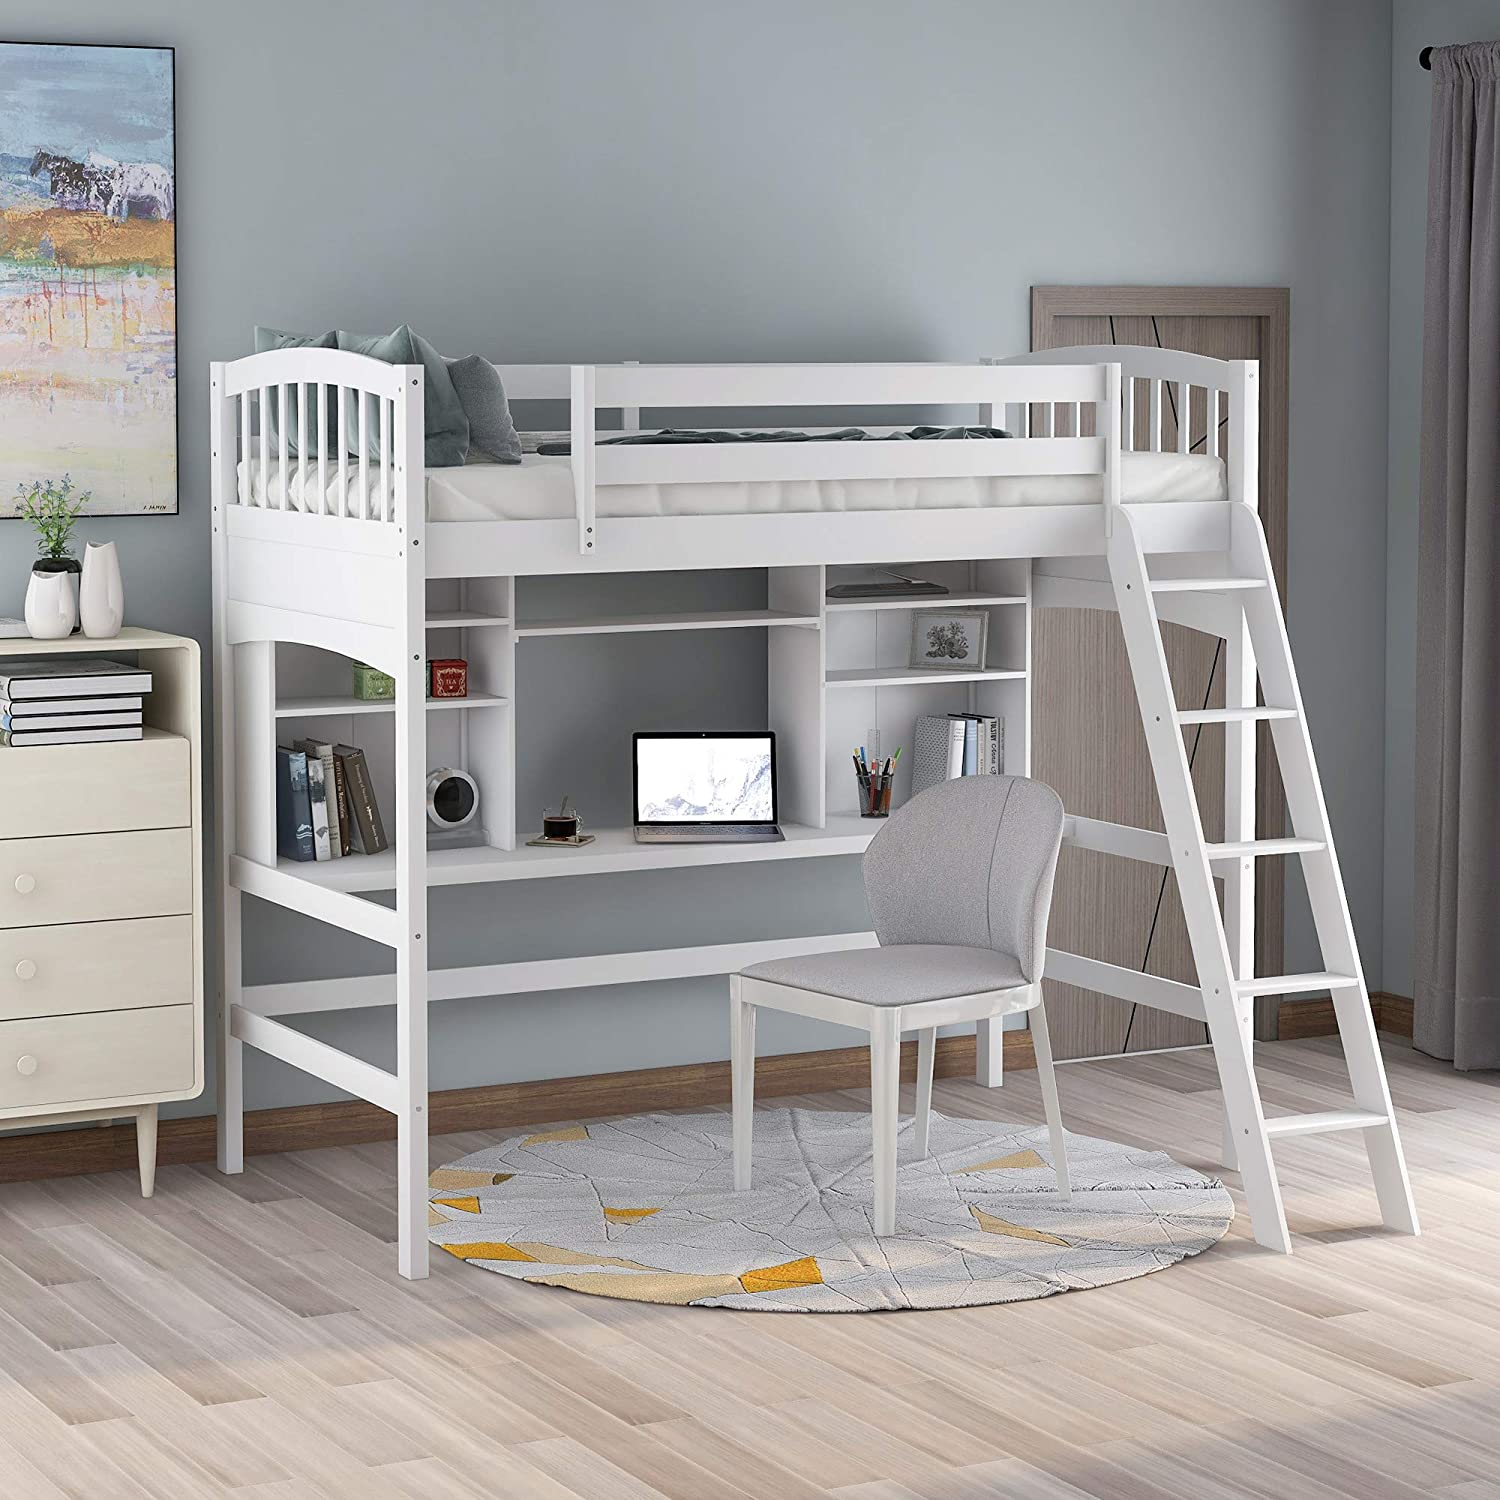 Amazon Com Purlove Solid Wood Twin Loft Bed With Desk And Bookshelf Storage Function No Box Spring Needed Ladder Can Be Assembled On Either Sides White Kitchen Dining